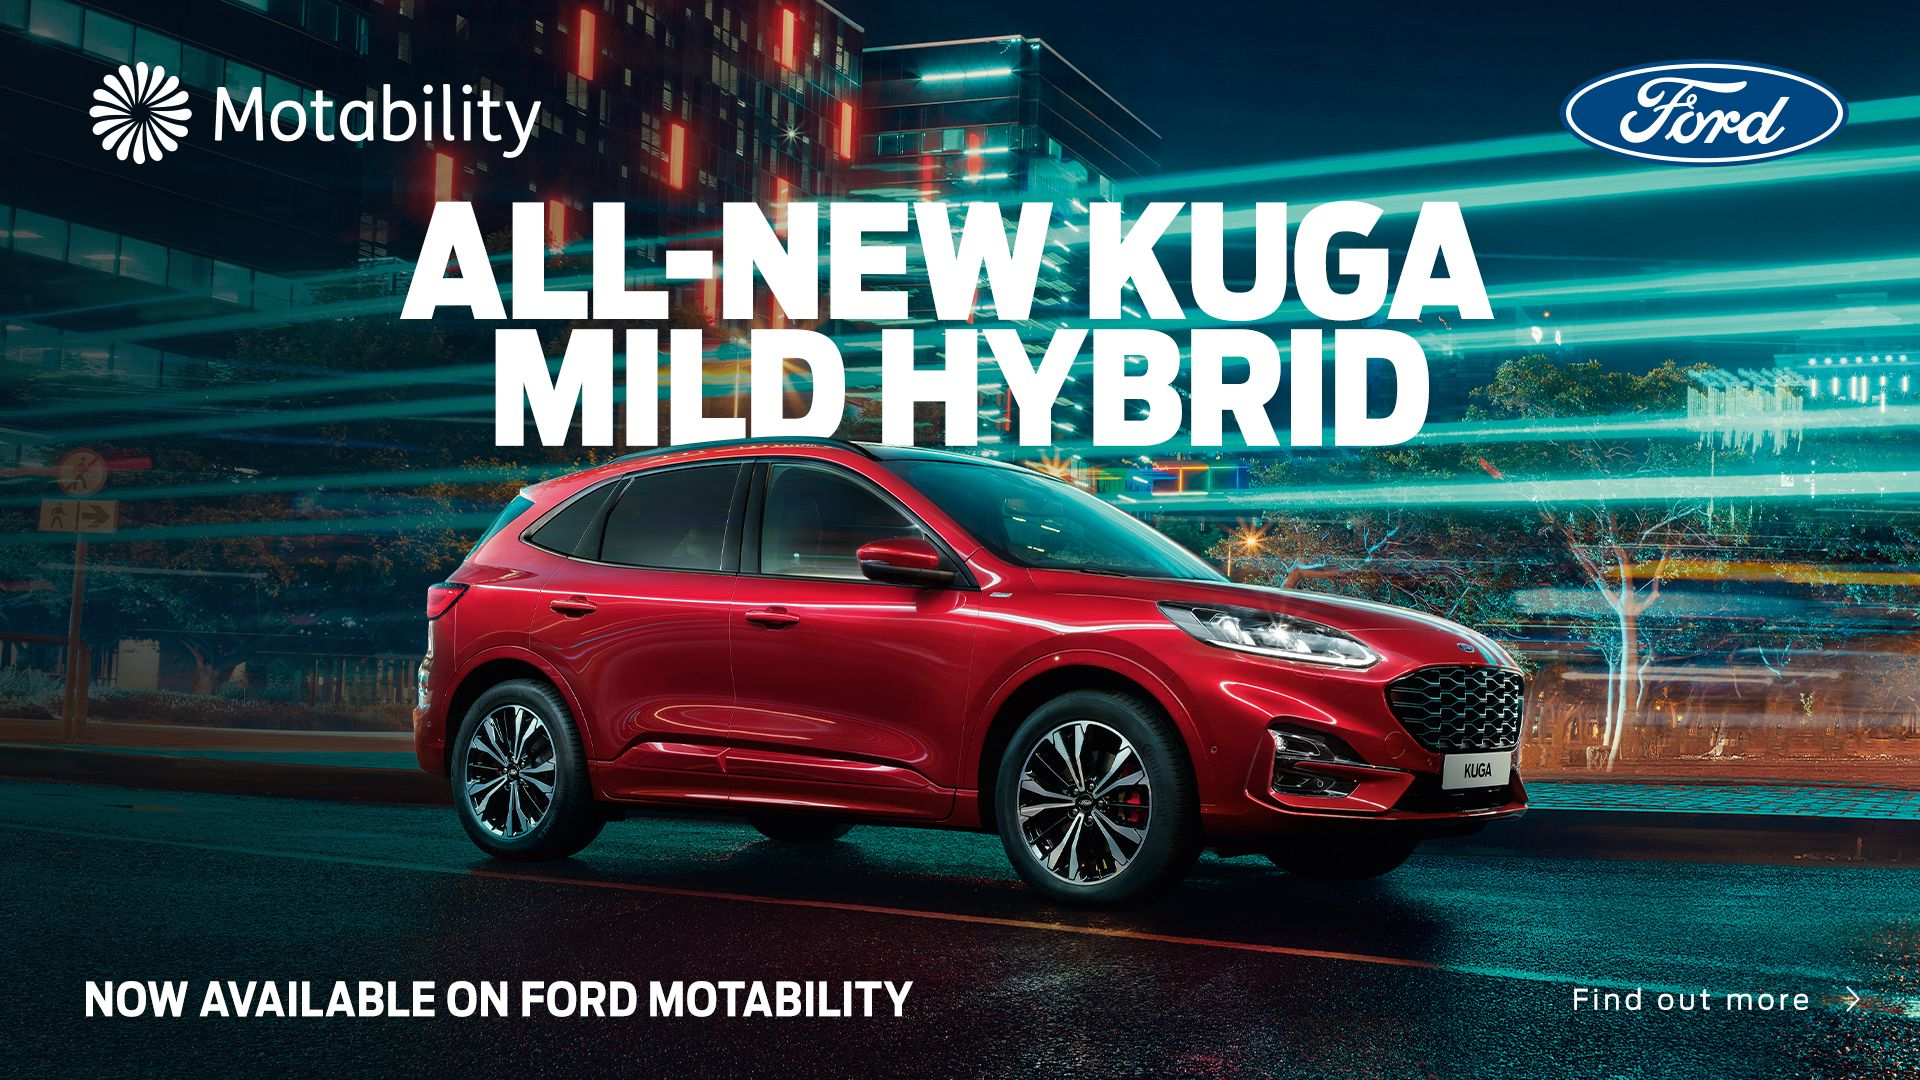 Motability at MotorLux Ford